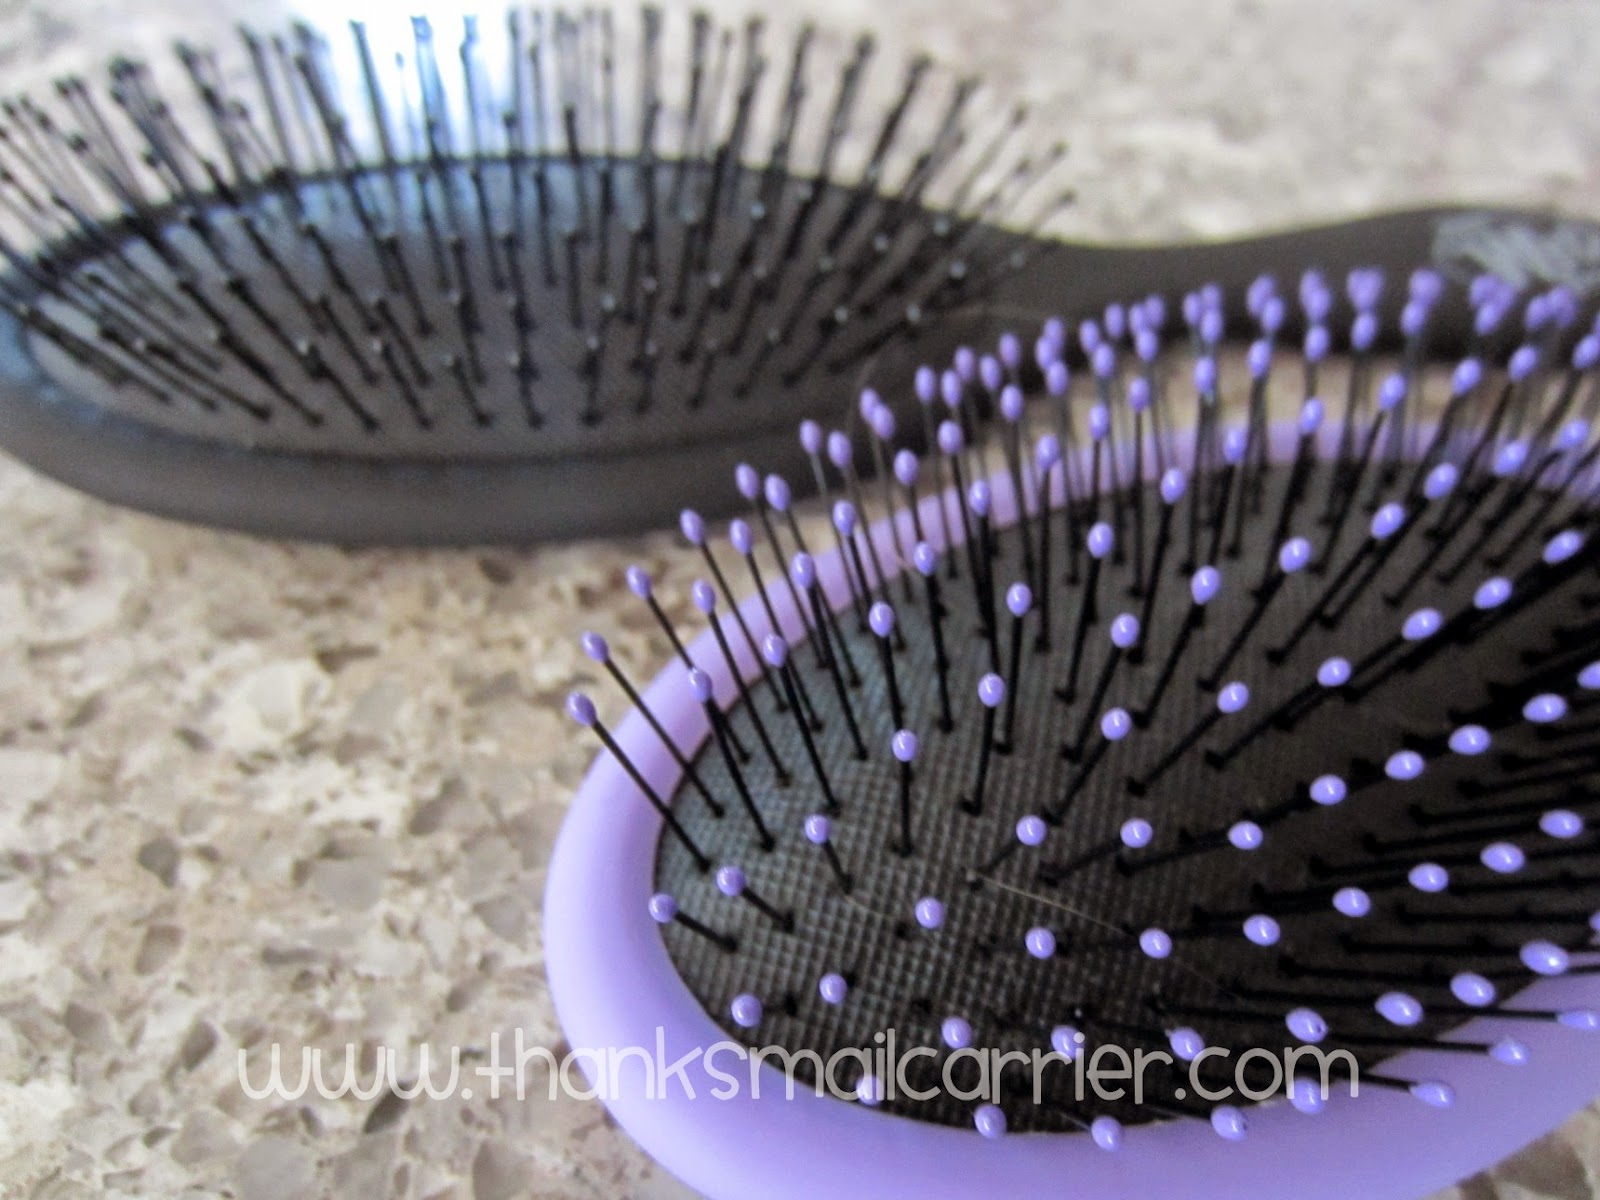 The Wet Brush bristles